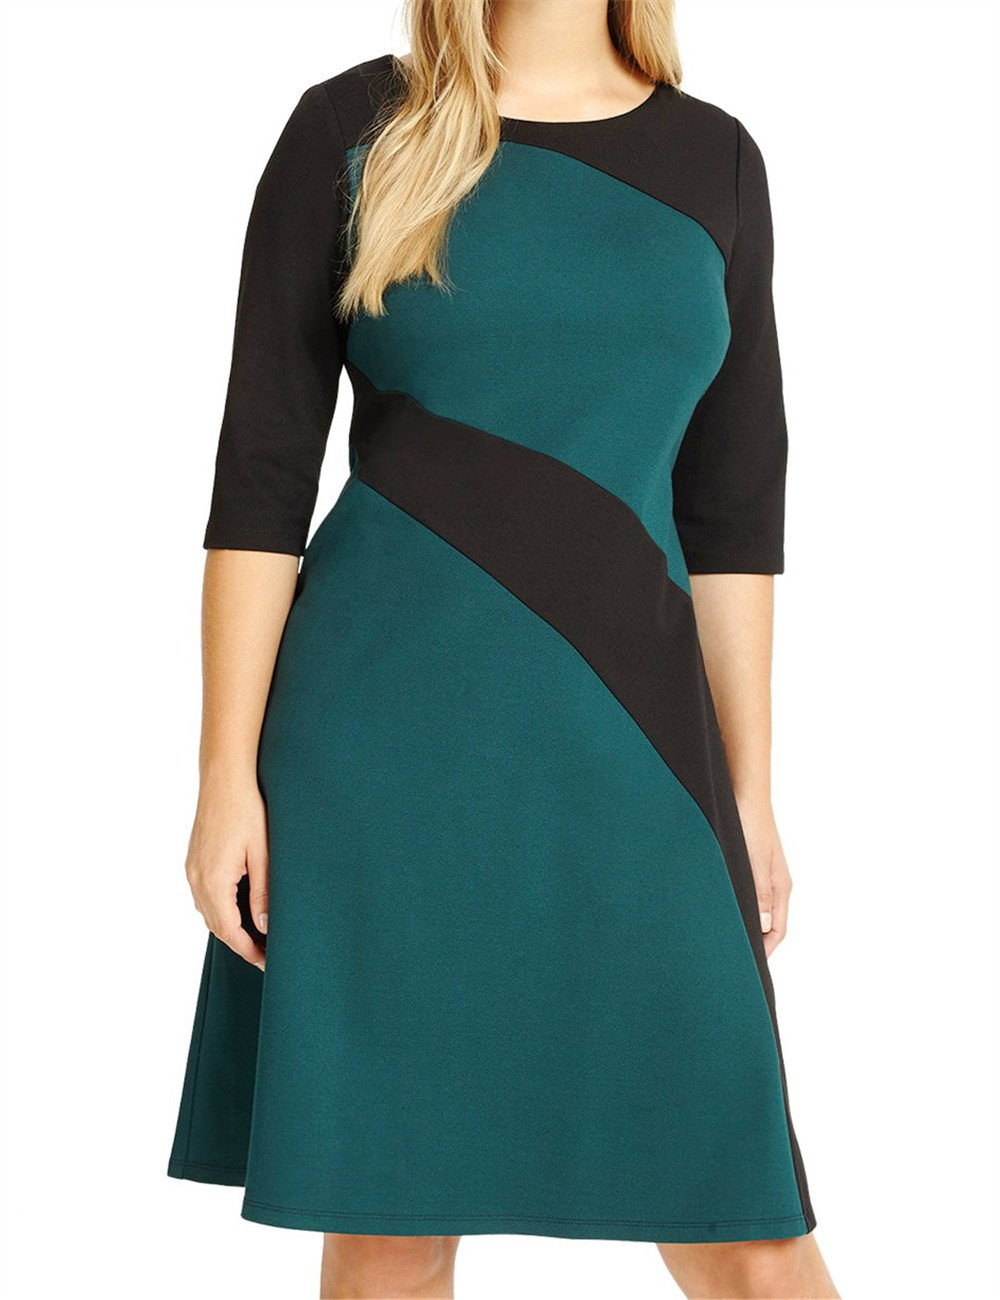 Chicwe Women's Plus Size Stylish Contrast Ponte Dress - Knee Length Casual and Work Dress 2X